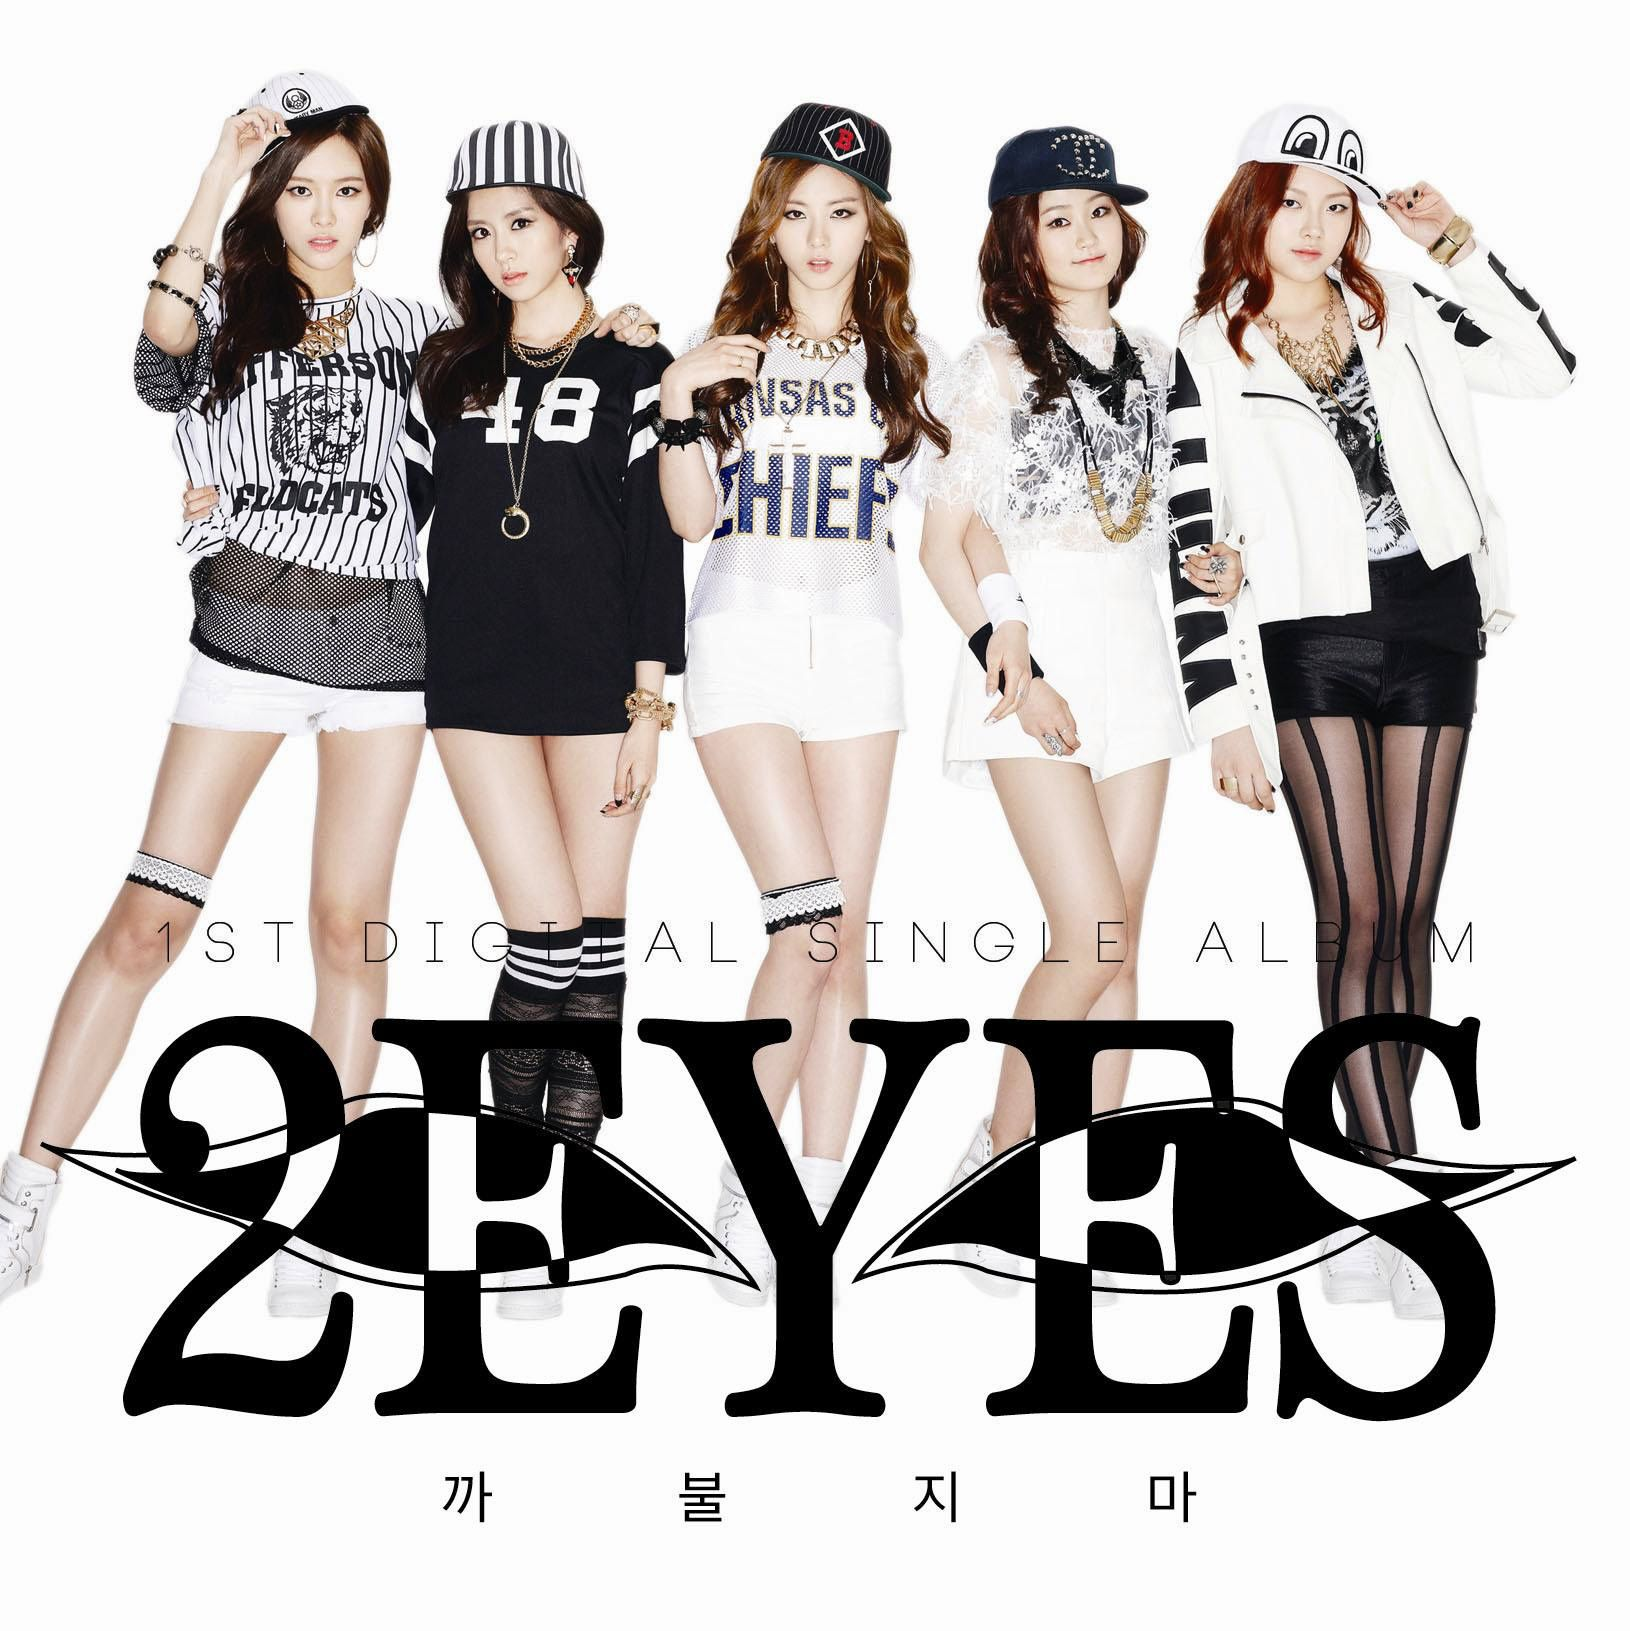 Download 2EYES - Don't Mess With Me 1st Digital Single